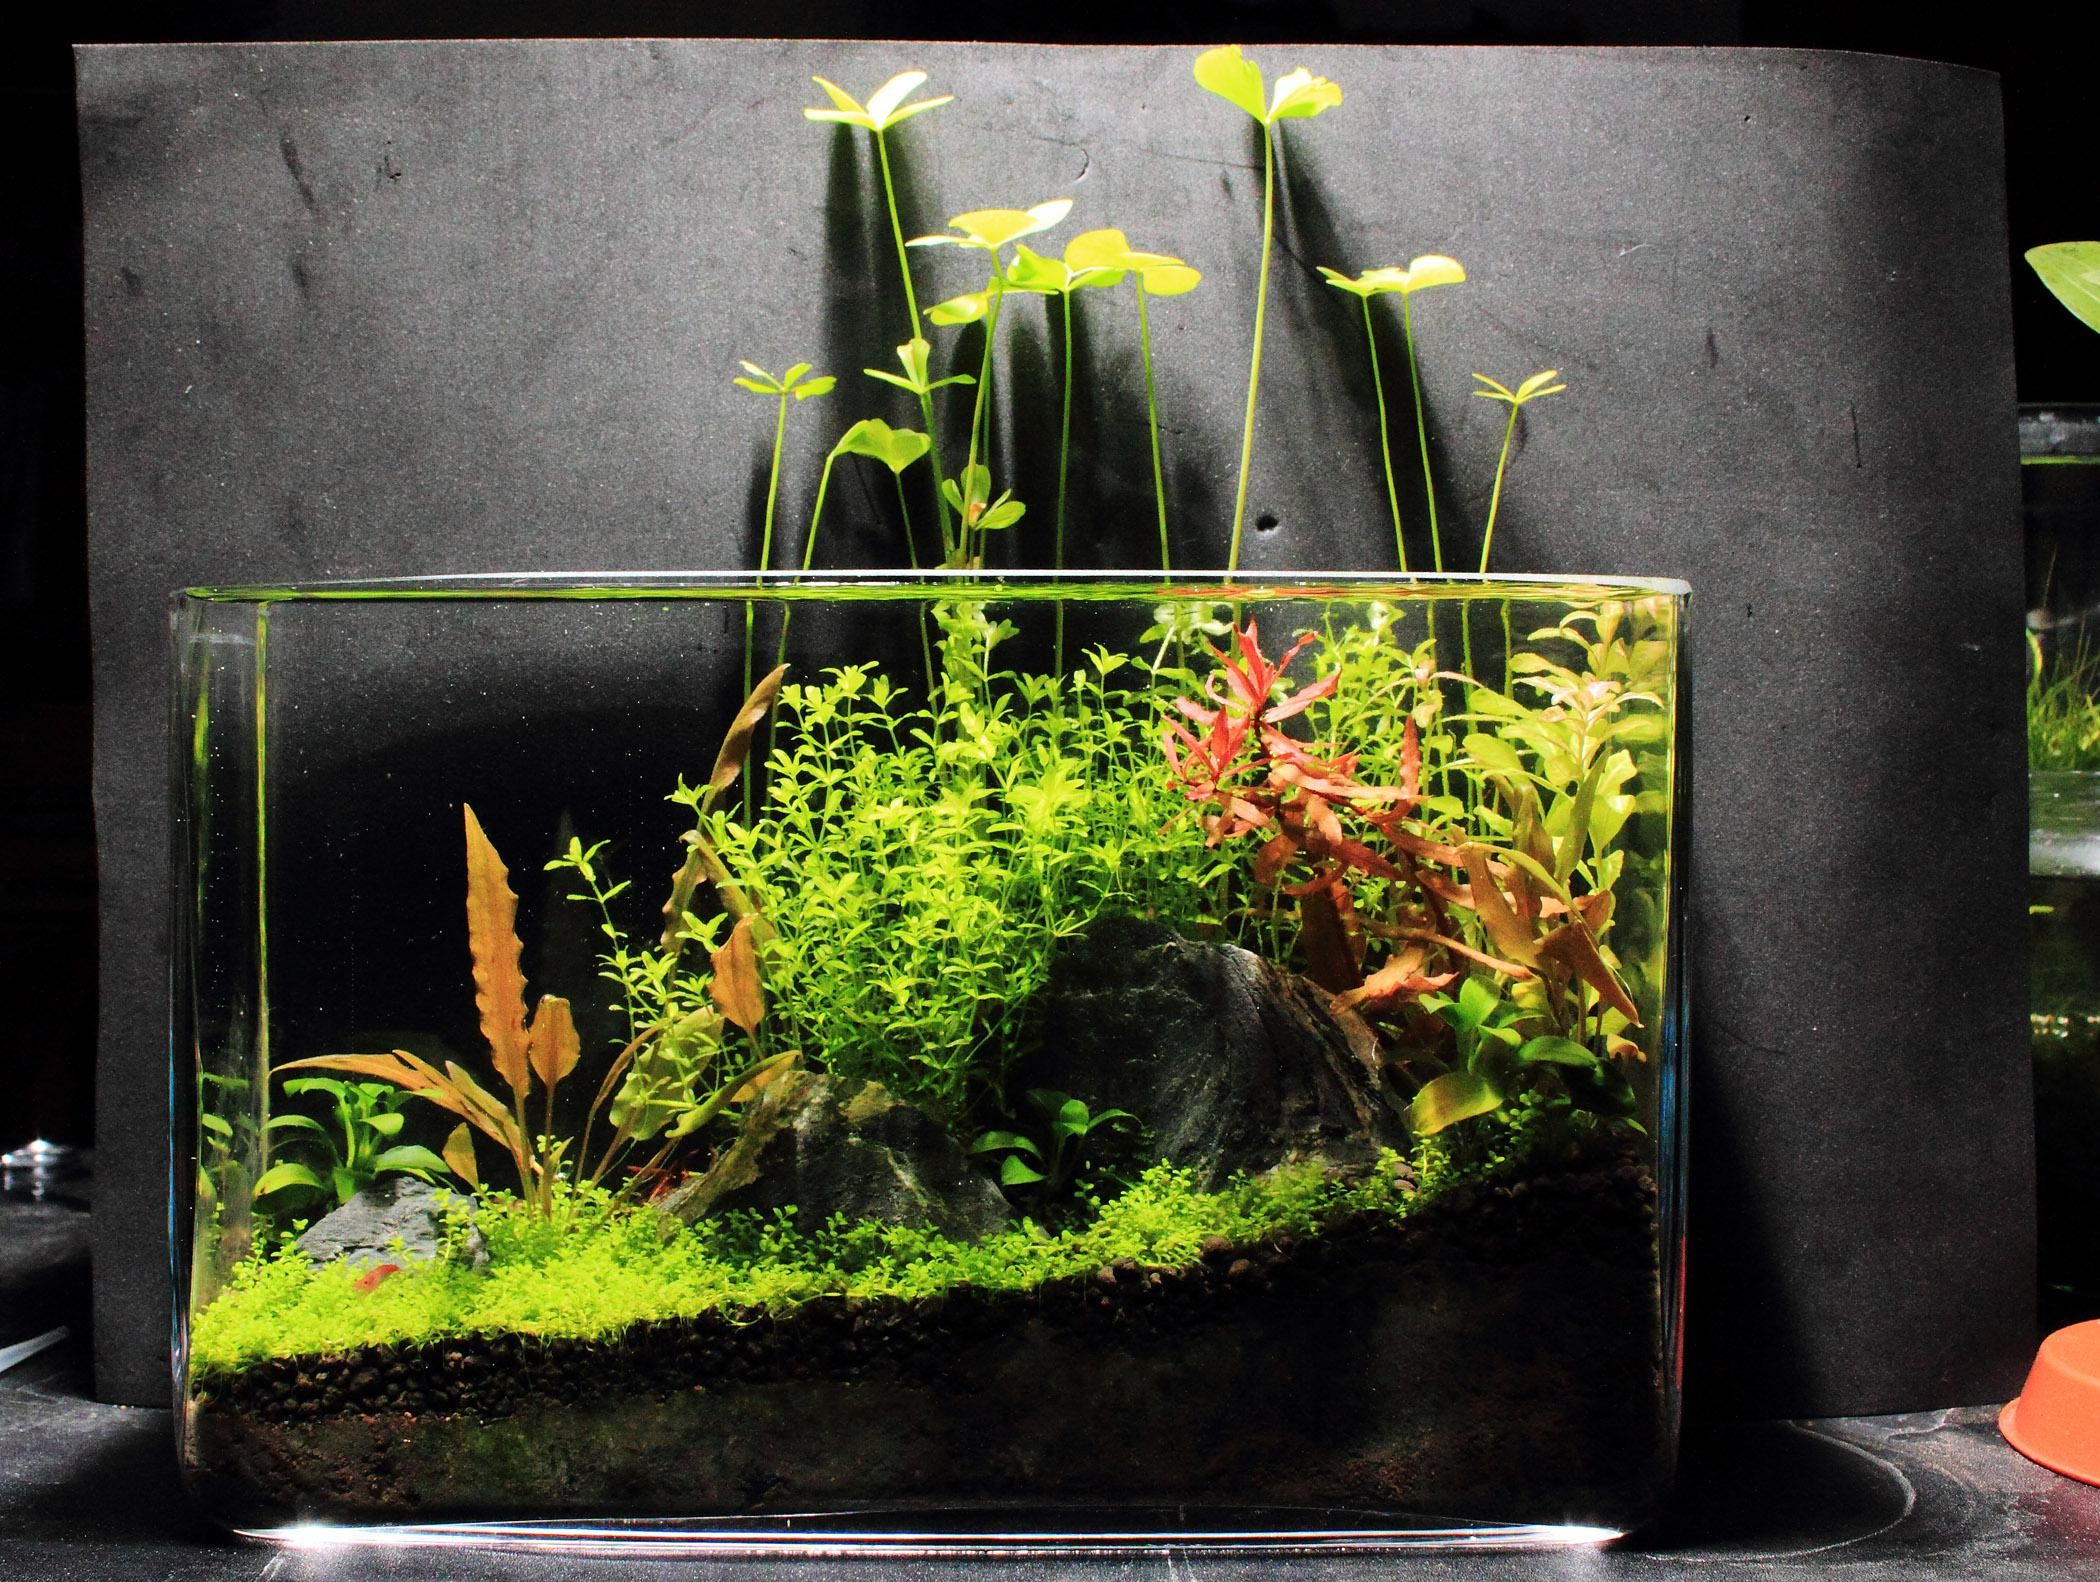 Aquarium Verlichting Forum Xz S 3ft High Tech Low Tech Nano Experiments The Planted Tank